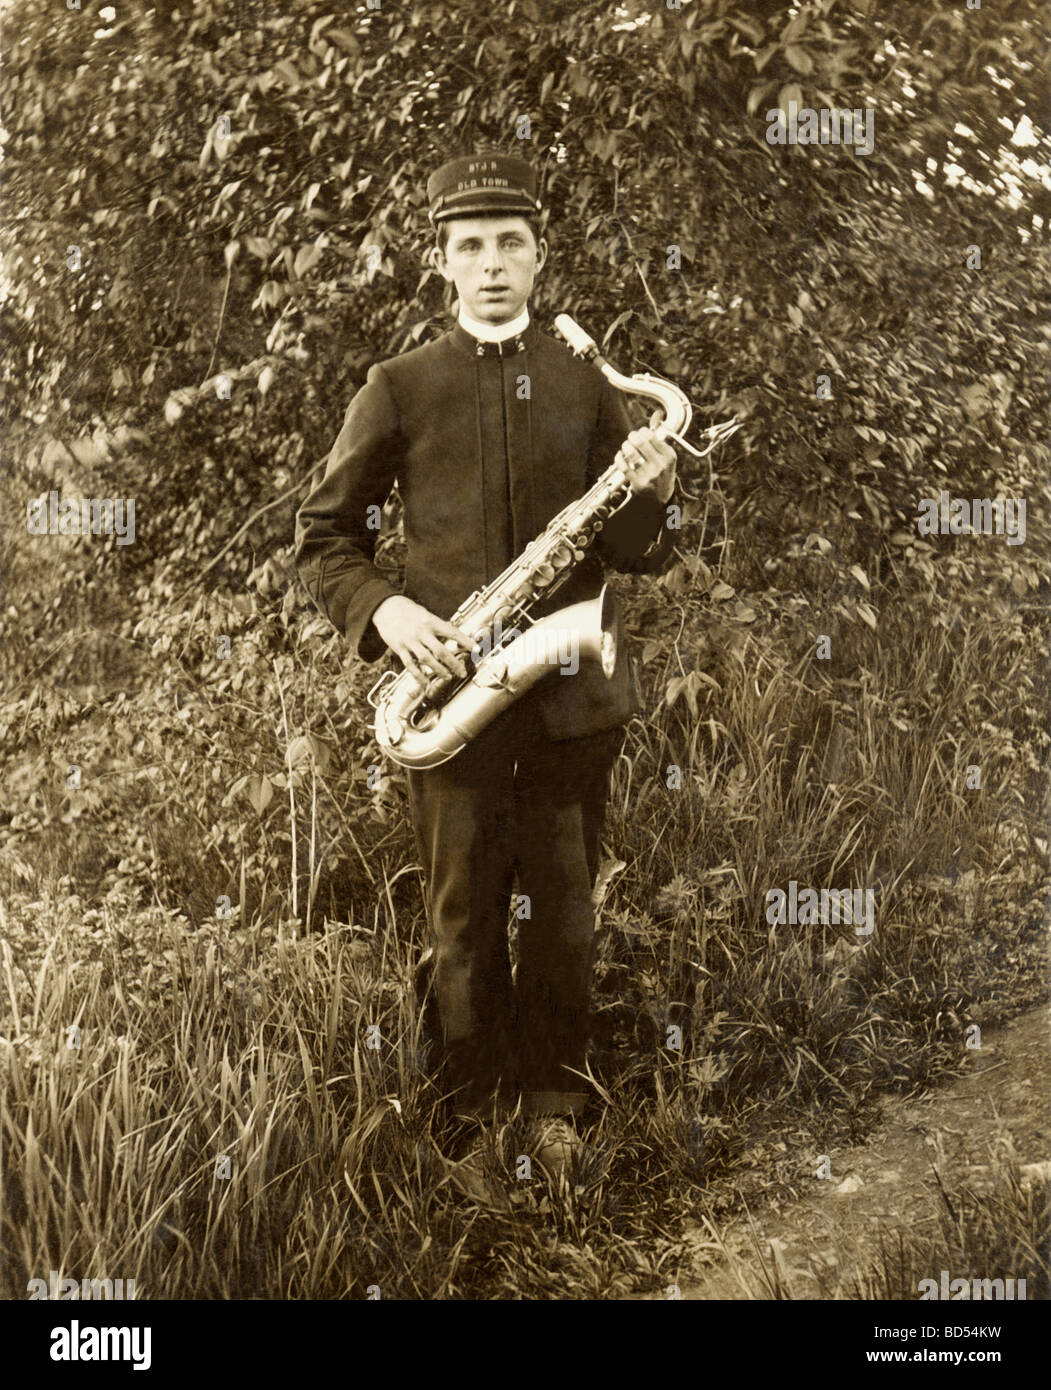 Old Town Band Member with Saxophone - Stock Image